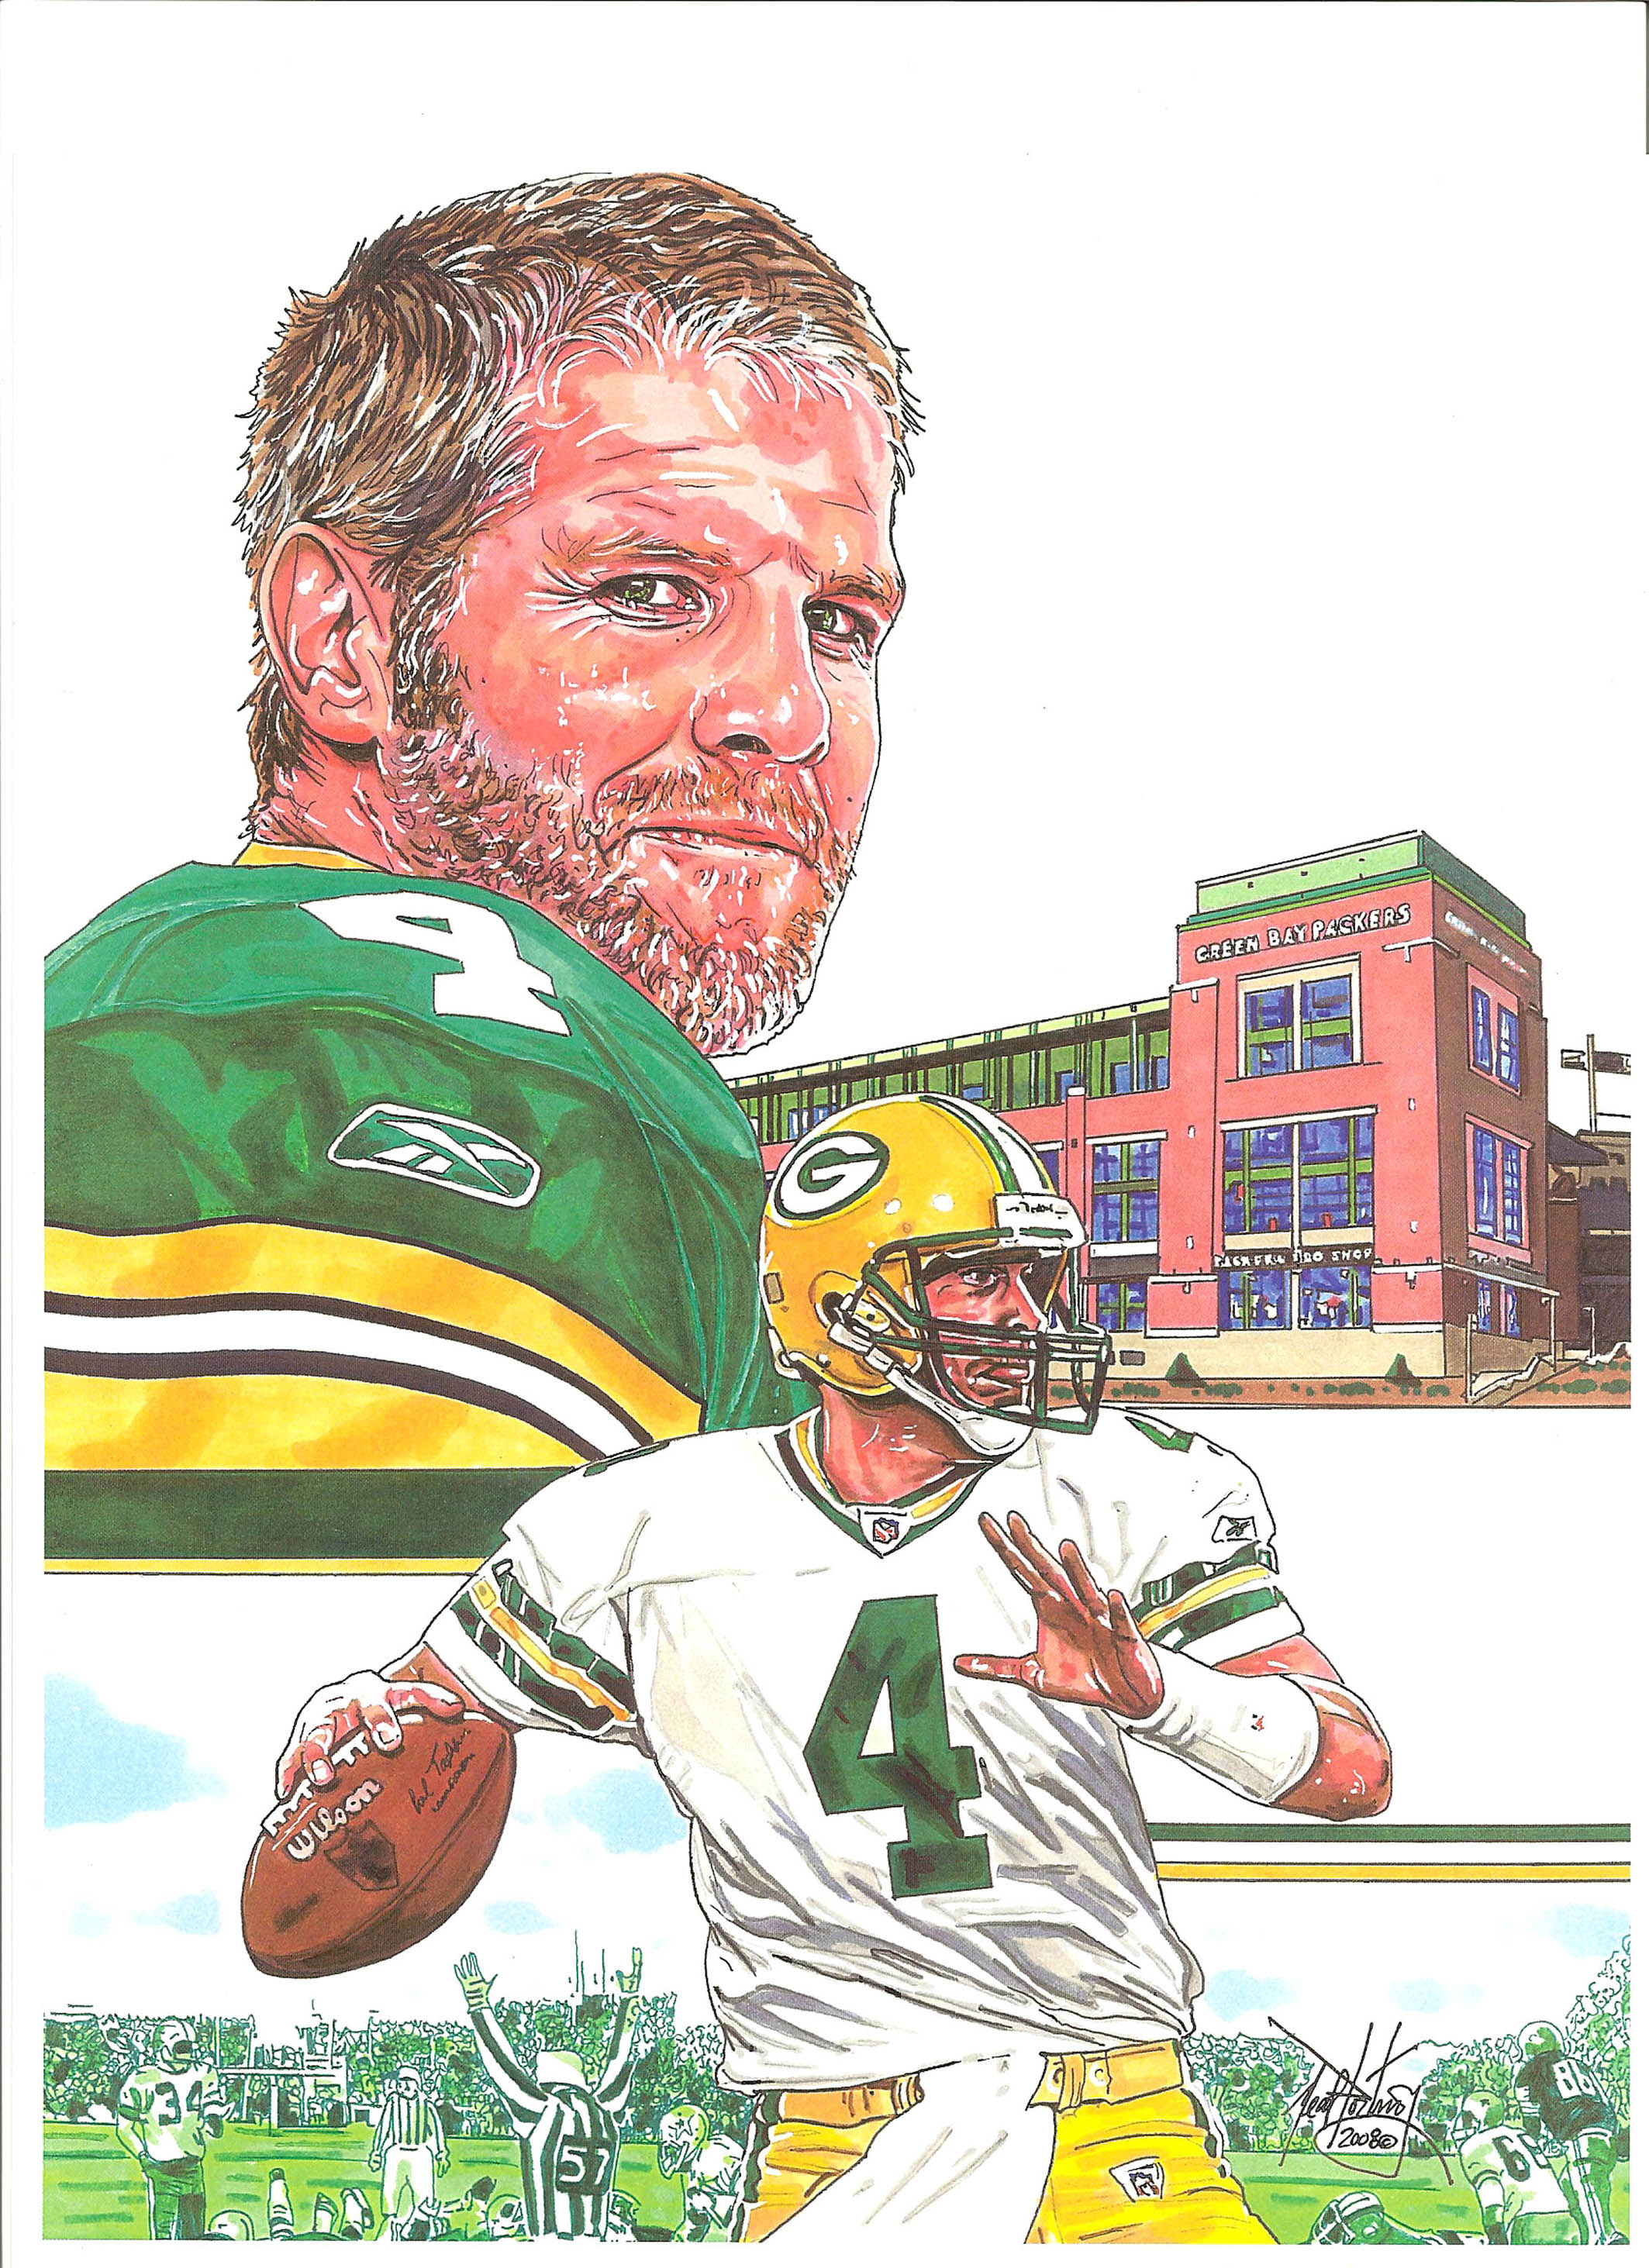 Ok-like-him-or-not-he-still-is-a-Hall-Of-Fame-QB-Here-is-an-illustration-I-did-a-few-years-ba-wallpaper-wp4006619